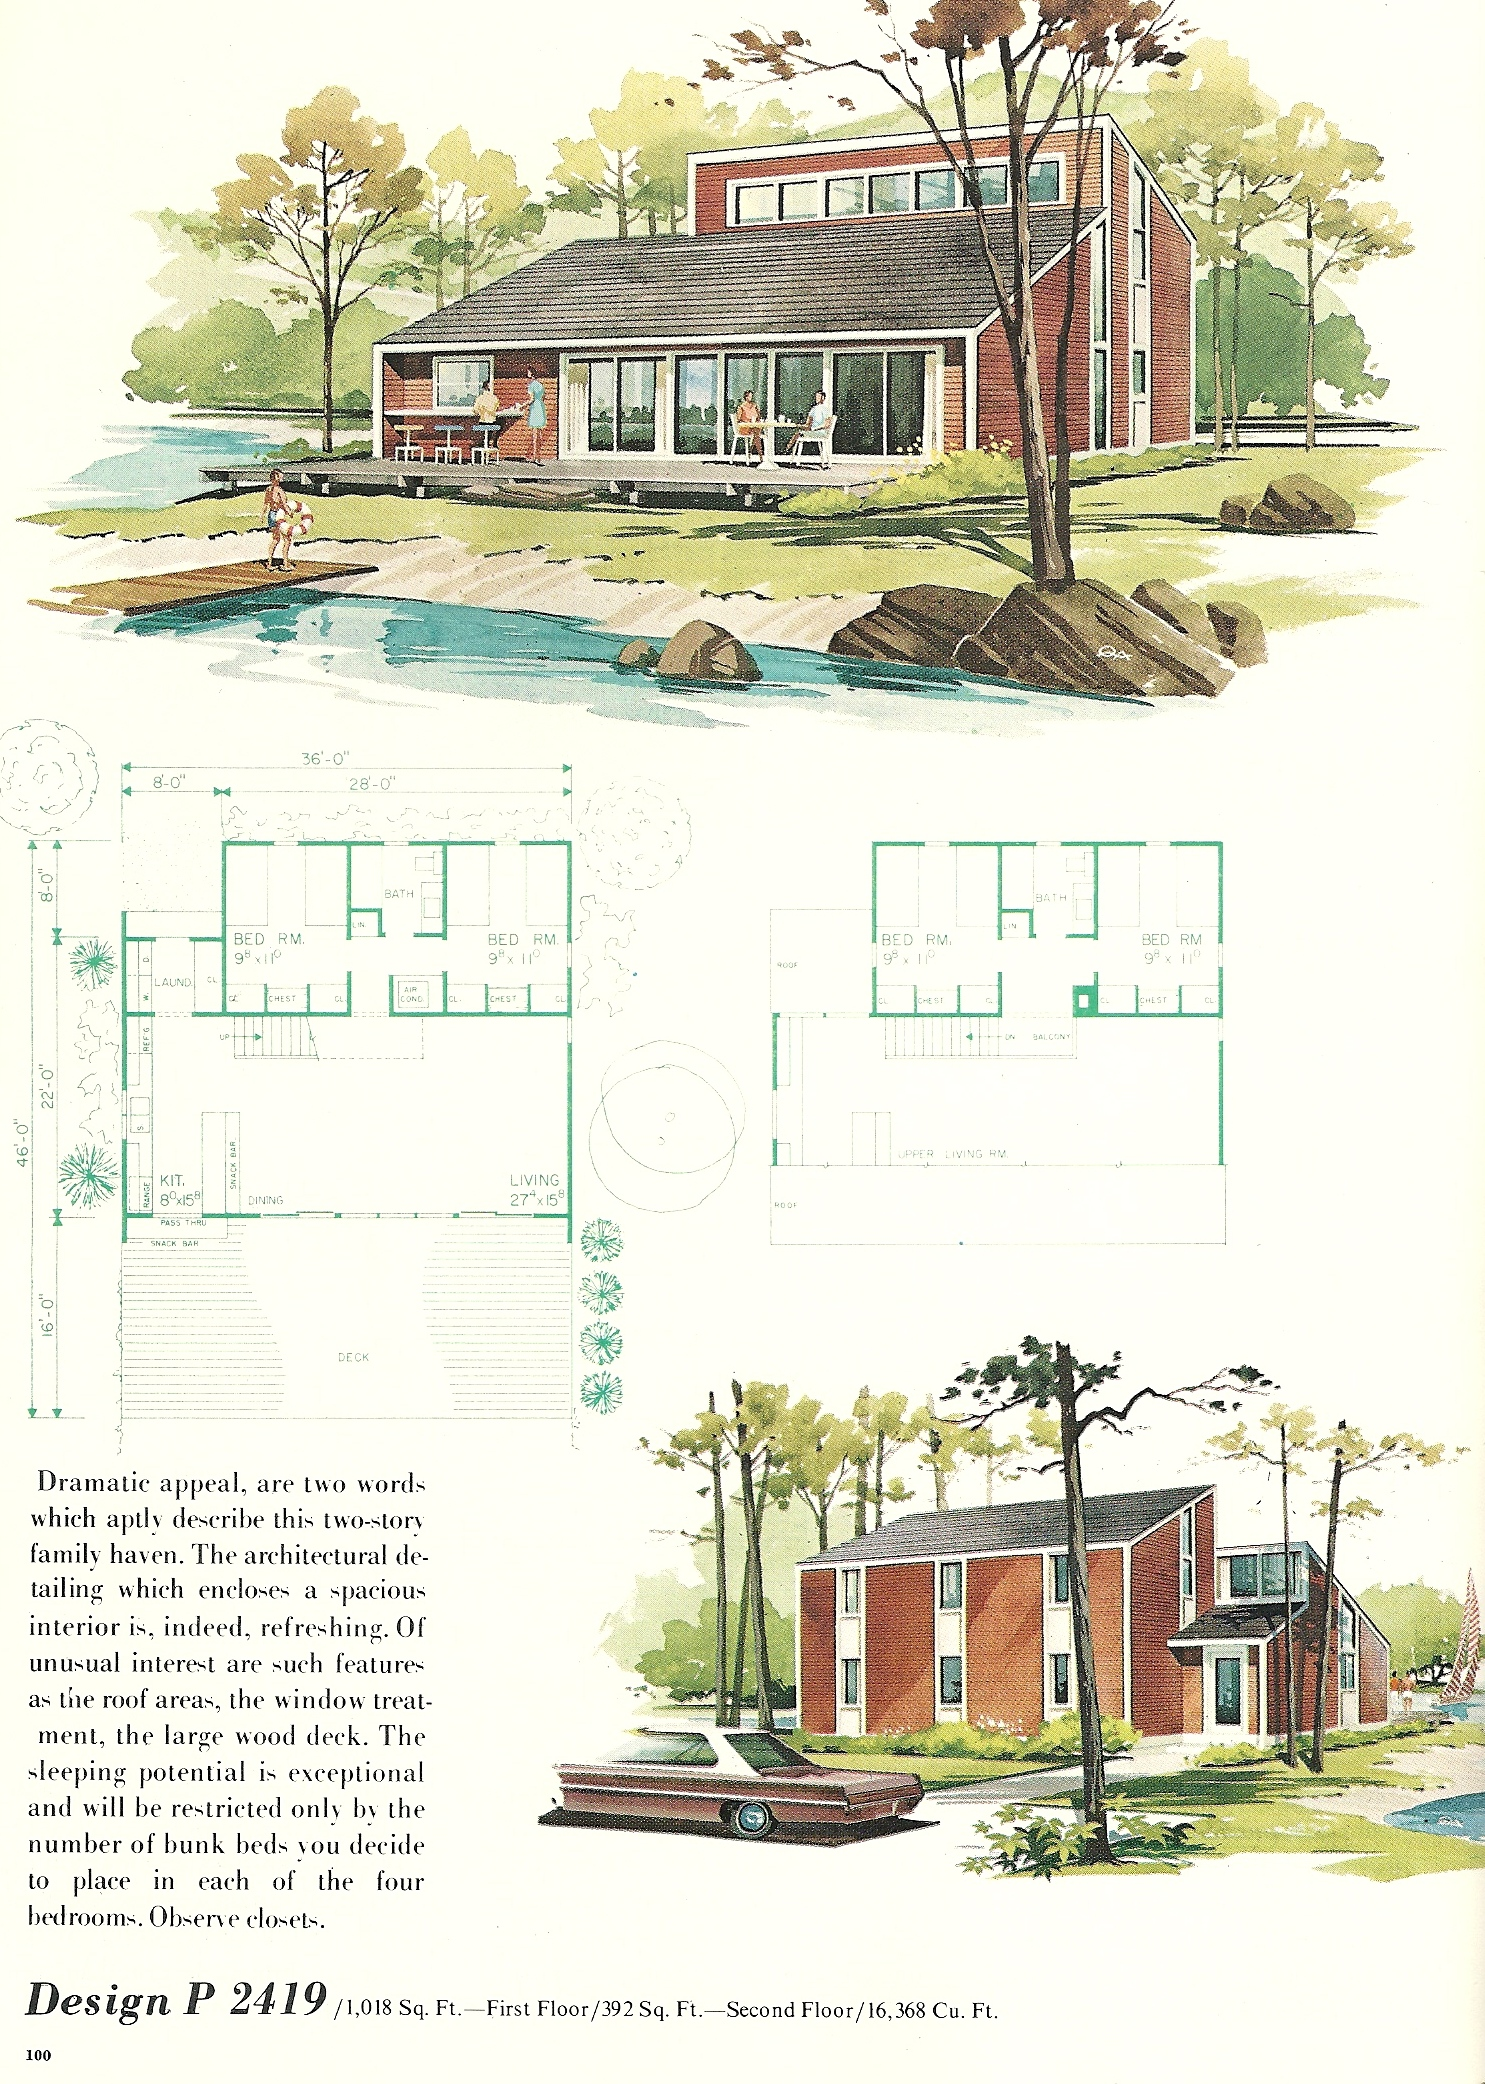 Vintage vacation home plans 2419 antique alter ego for New house plans 2013